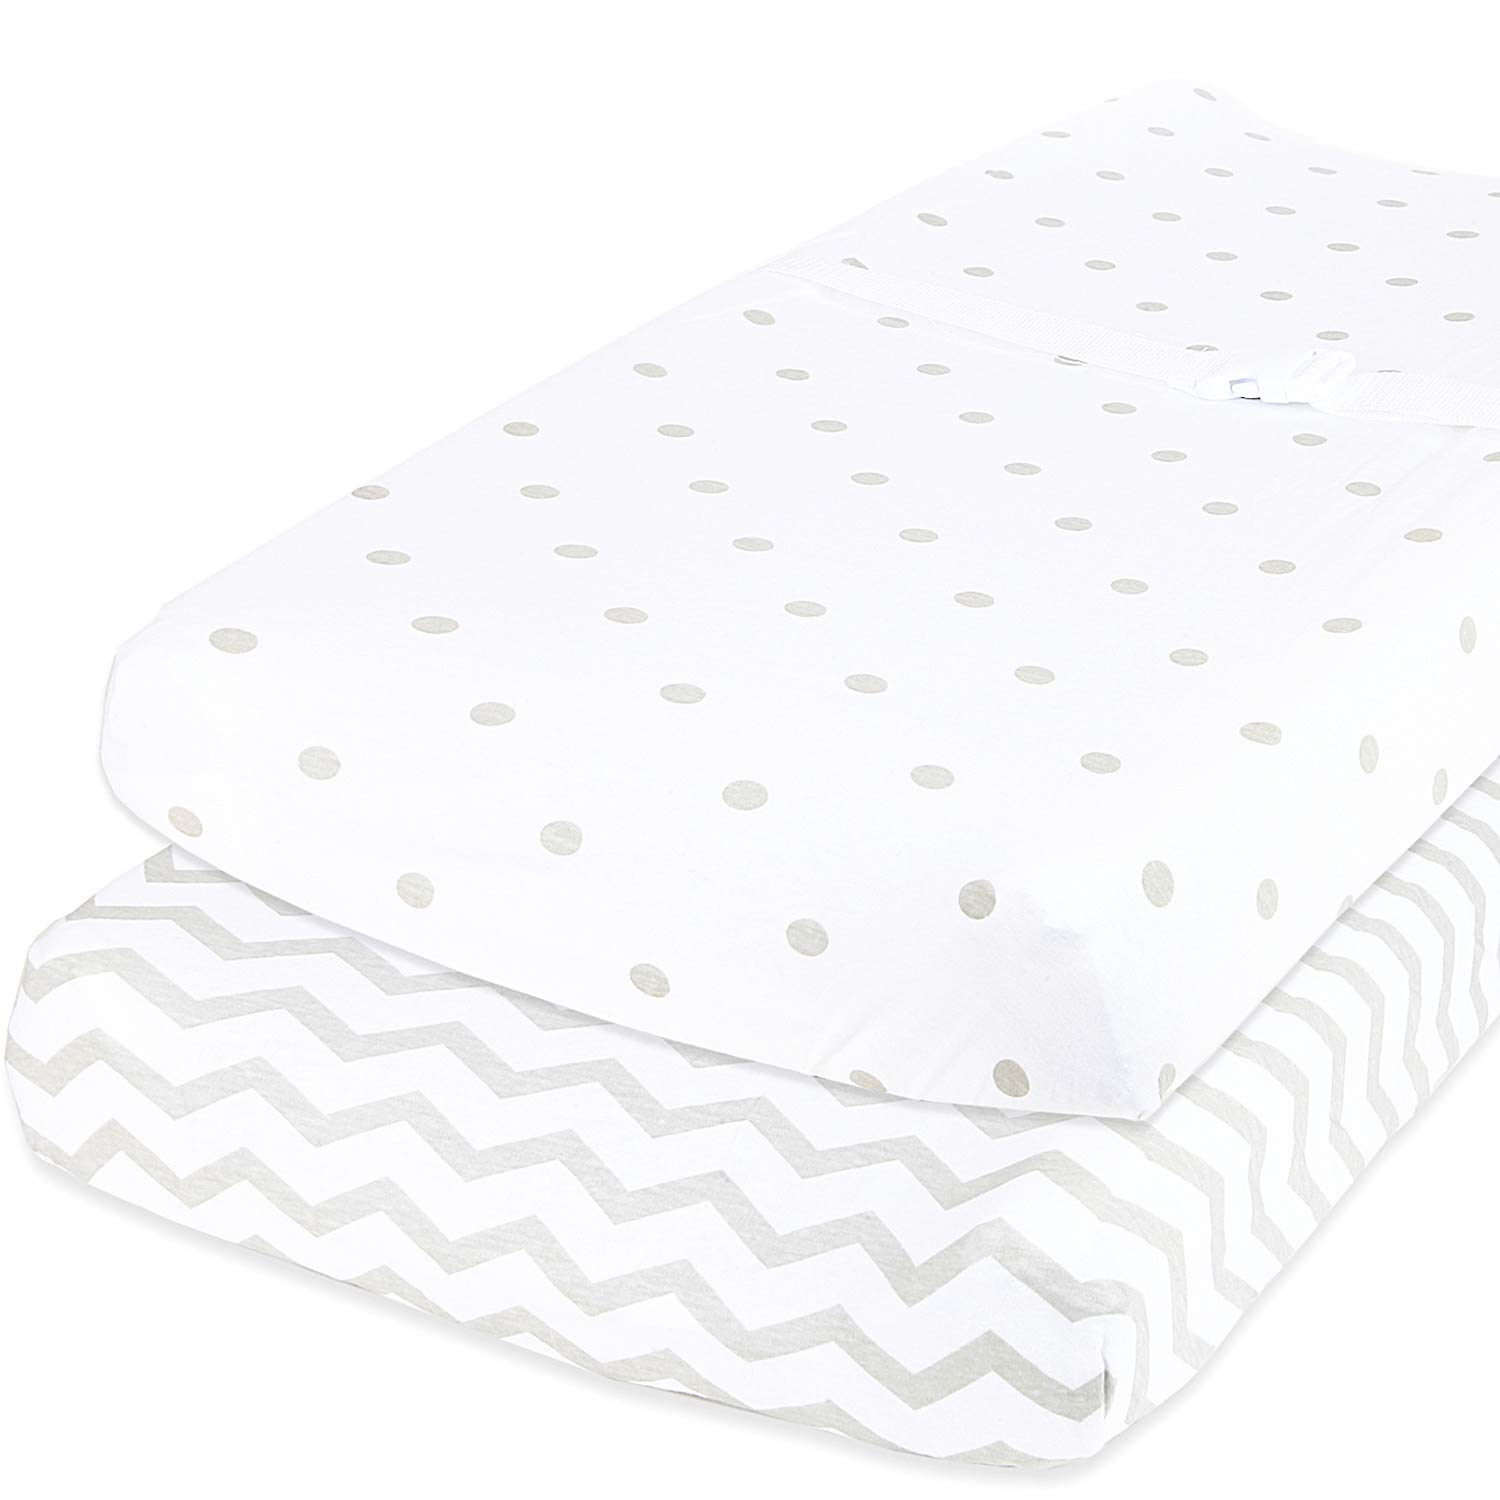 Cuddly Cubs Baby Changing Table Pad Cover Set for Boys & Girls | Soft & Breathable 100% Jersey Cotton | Adorable Unisex Patterns & Fitted Elastic Design | Cute Nursery & Cradle Bedding Sheets 2-Pack by Cuddly Cubs